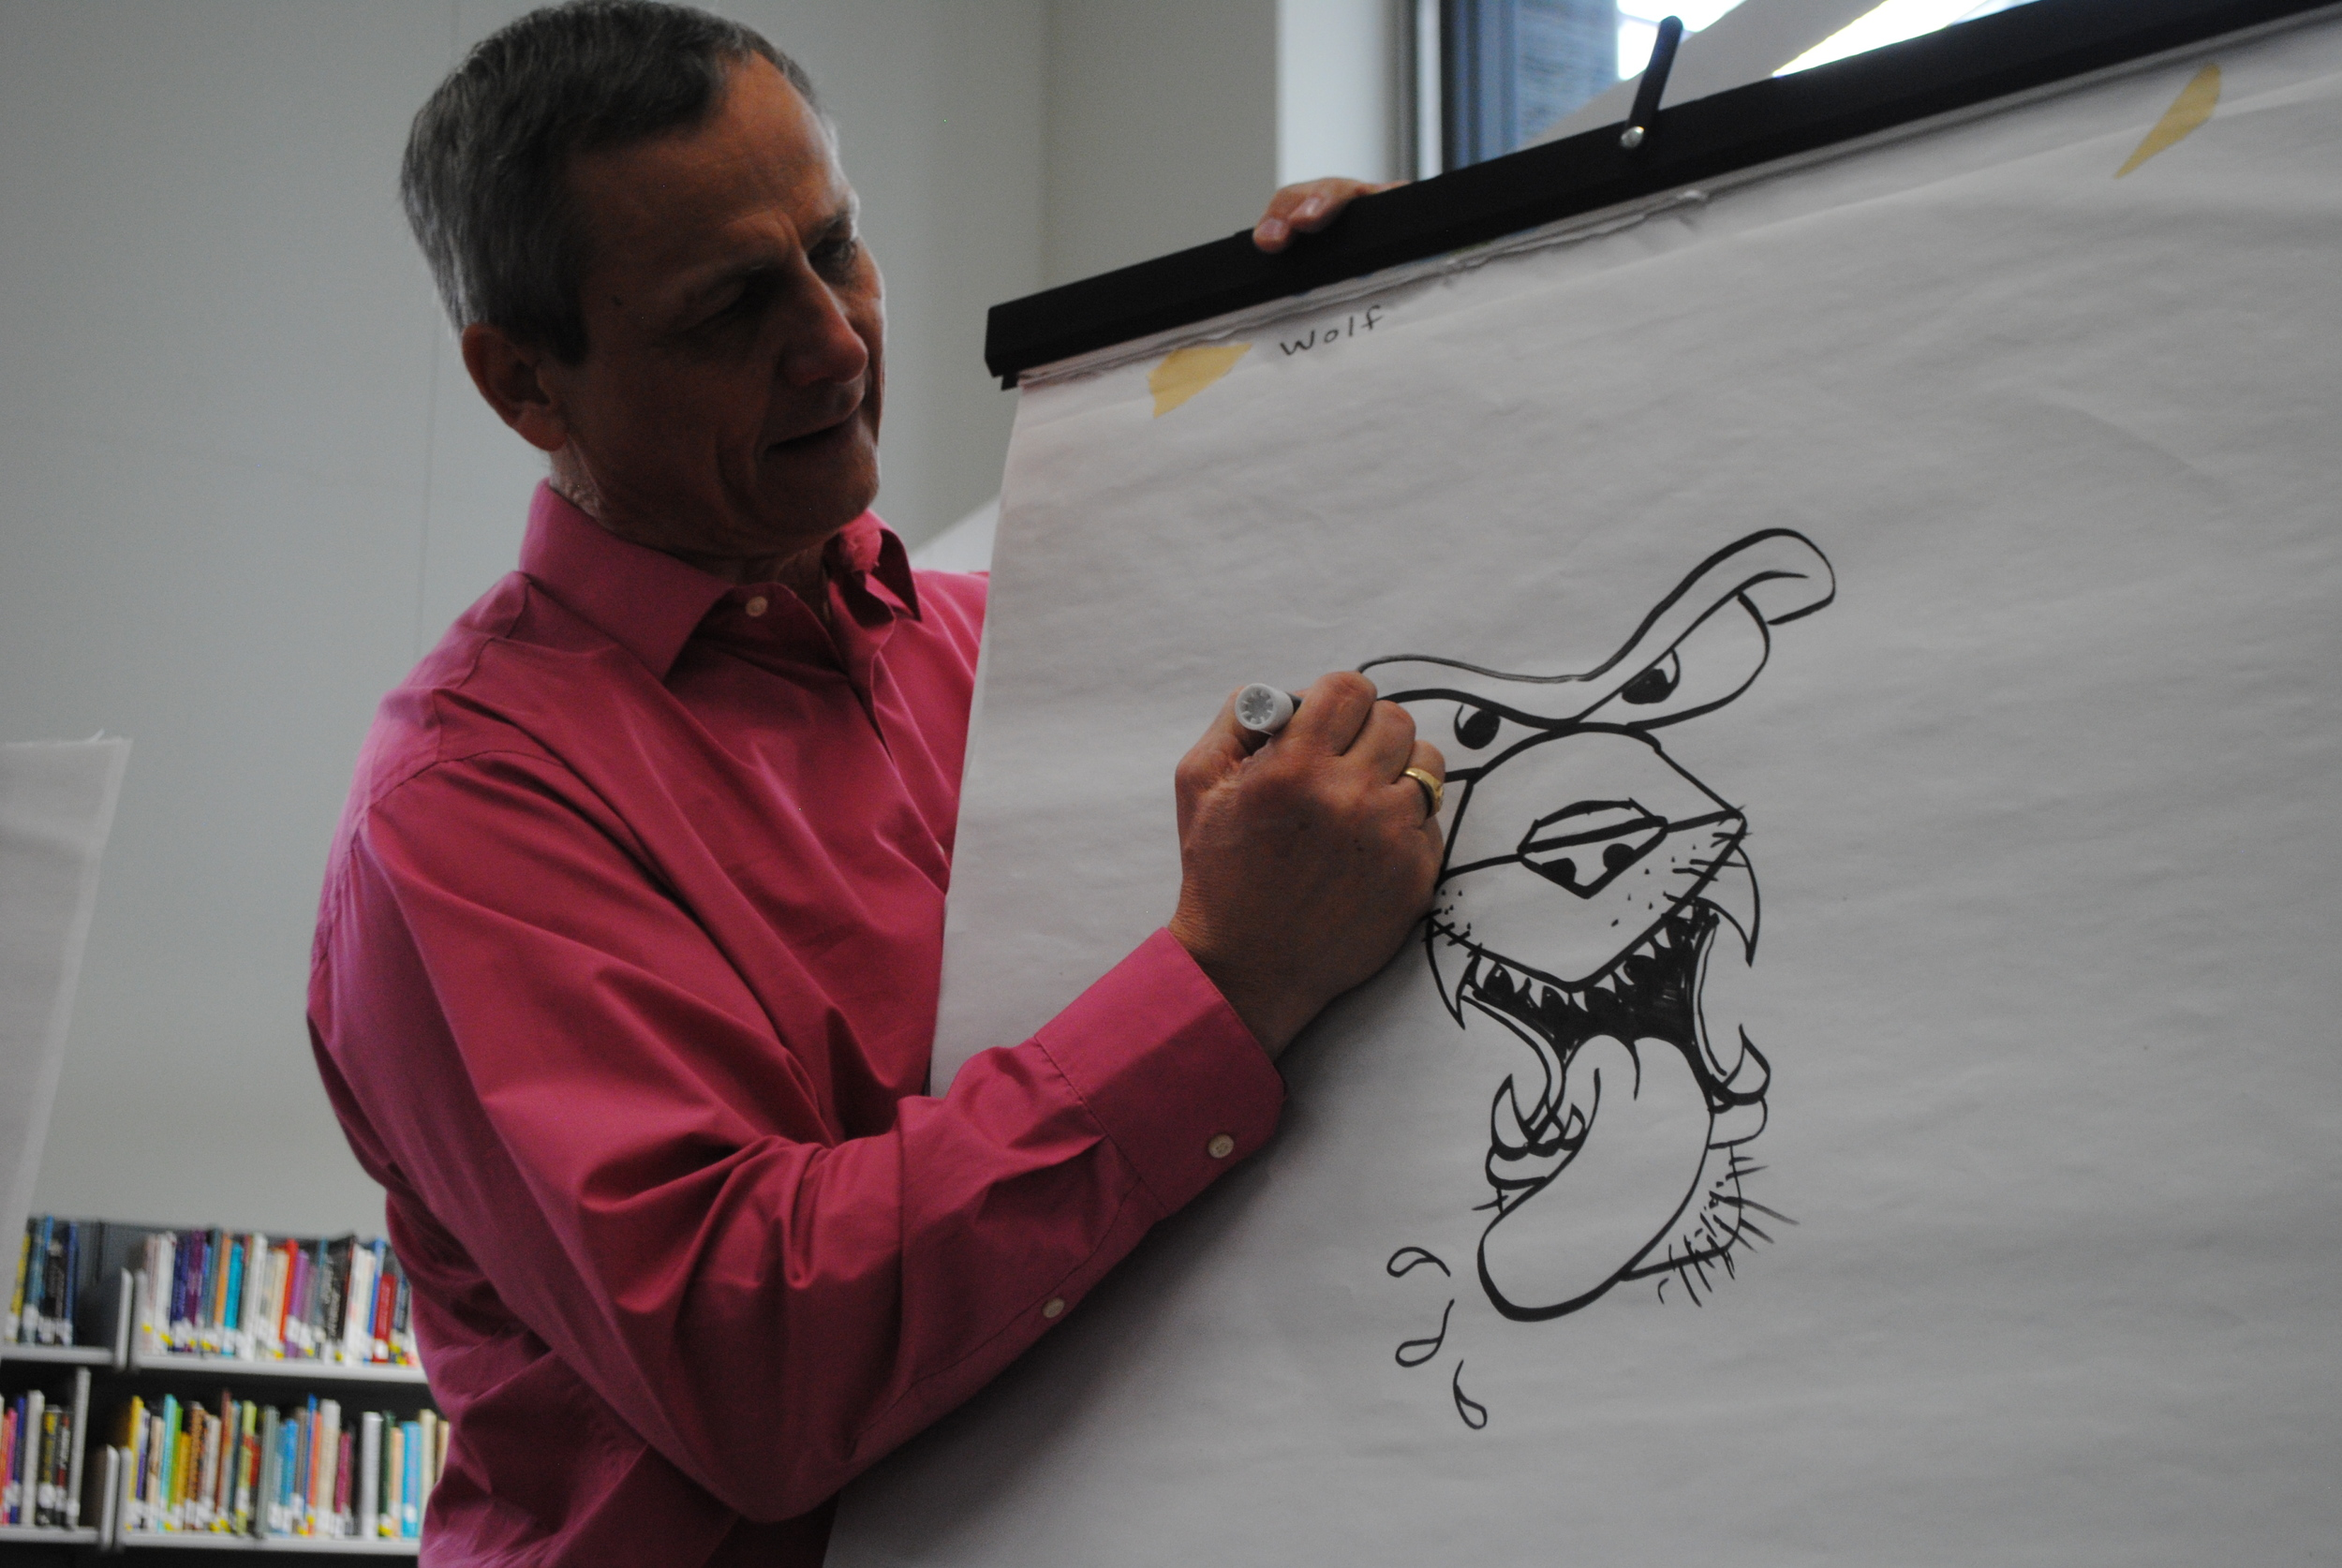 Illustrator/author Gary Harbo shows sixth-grade students how to draw a brow on a wolf during his artist-in-residence visit Thursday, Feb. 5 in the WDC Middle/High School Media Center. Students enjoyed learning cartoon-like drawing techniques from Harbo. (Photos by Dana Pavek, WDC Schools)